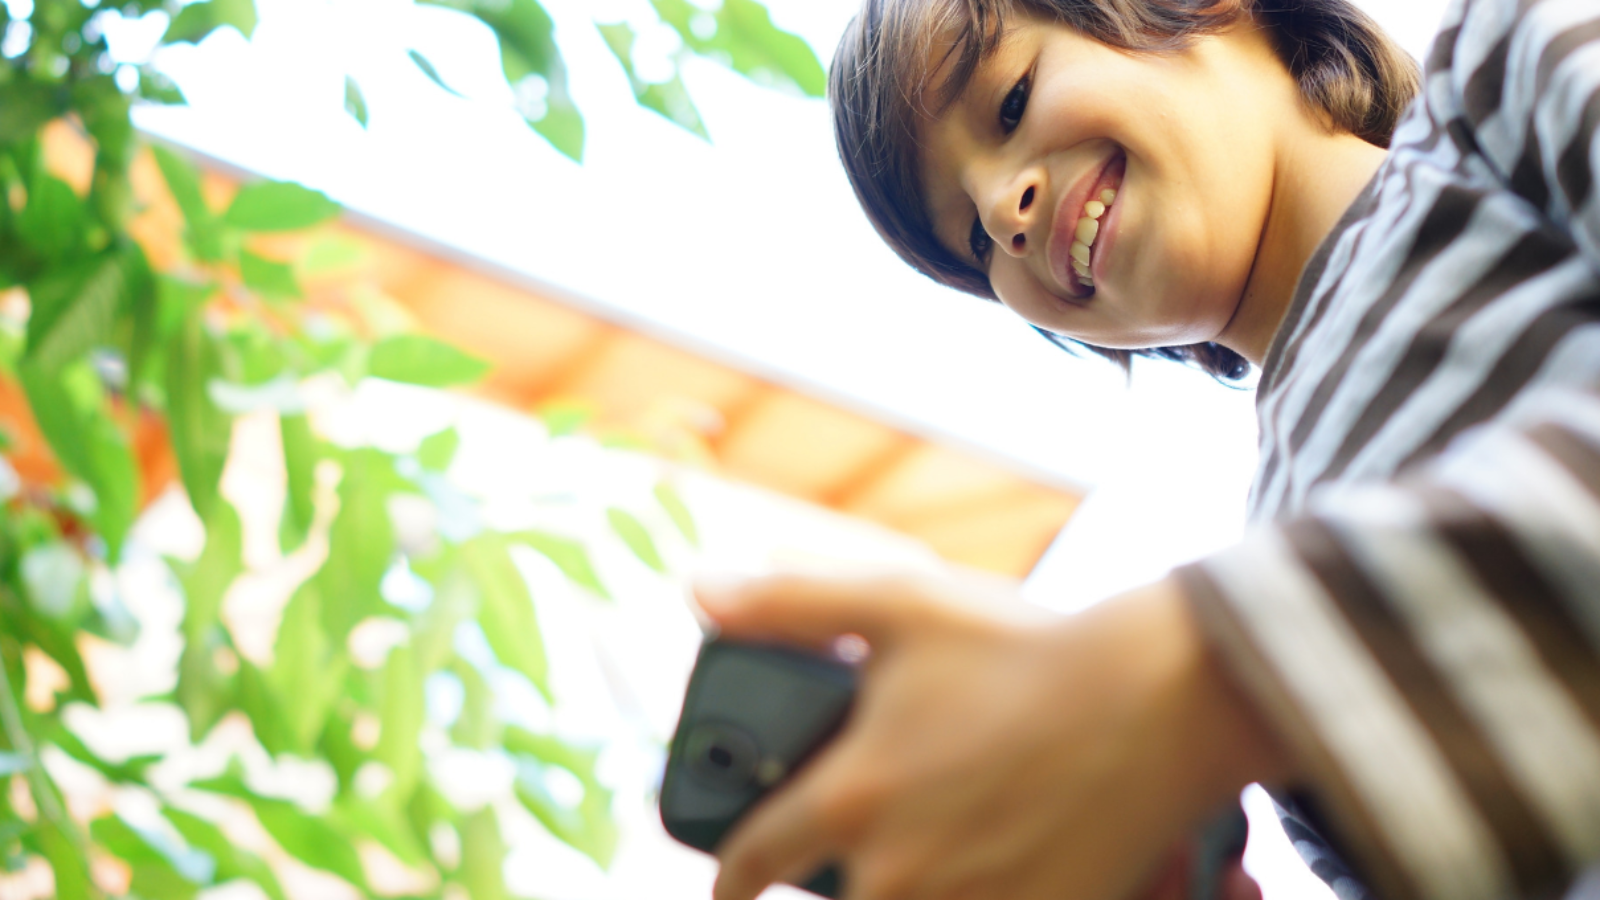 Teenager looking at his phone with a smile on his face, demonstrating good digital citizenship